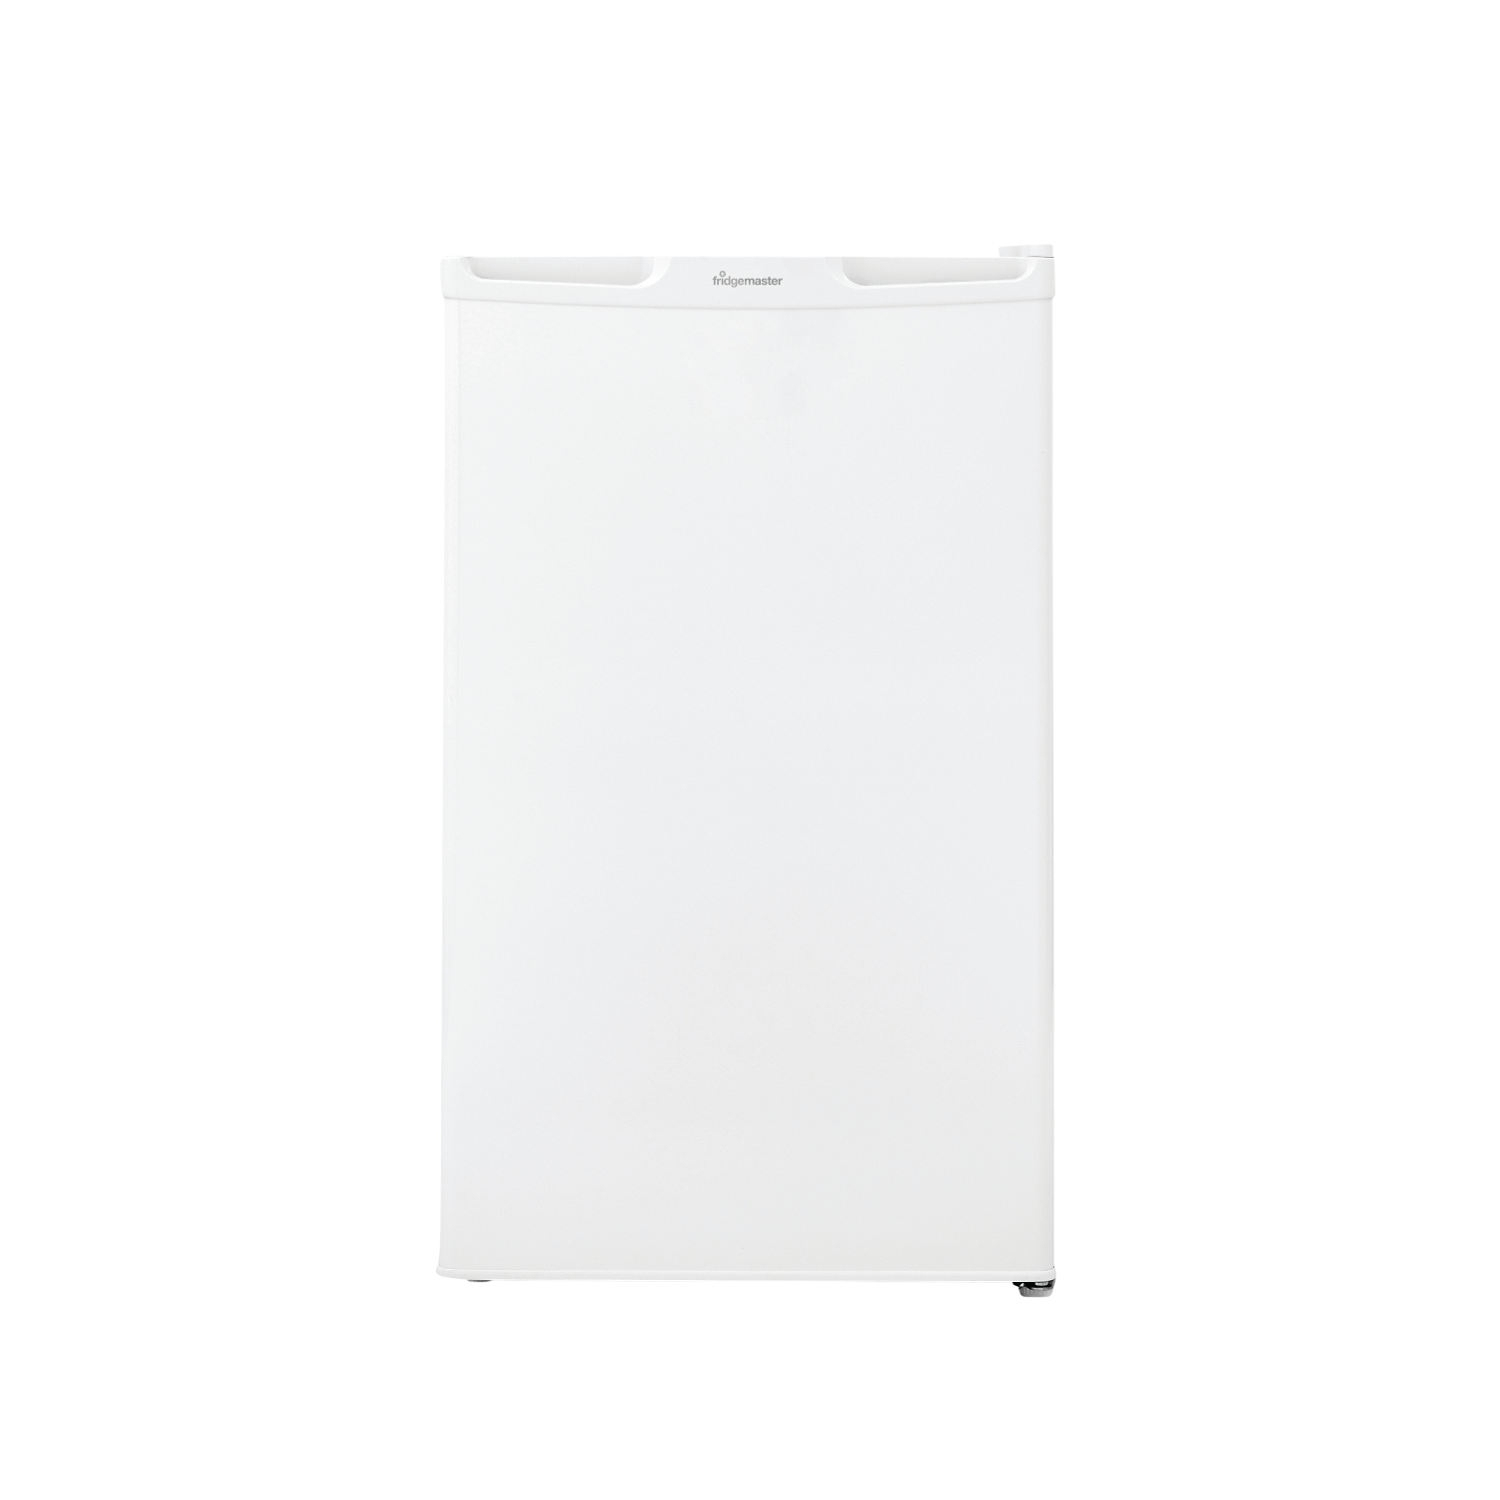 Fridgemaster Undercounter Freezer - 5